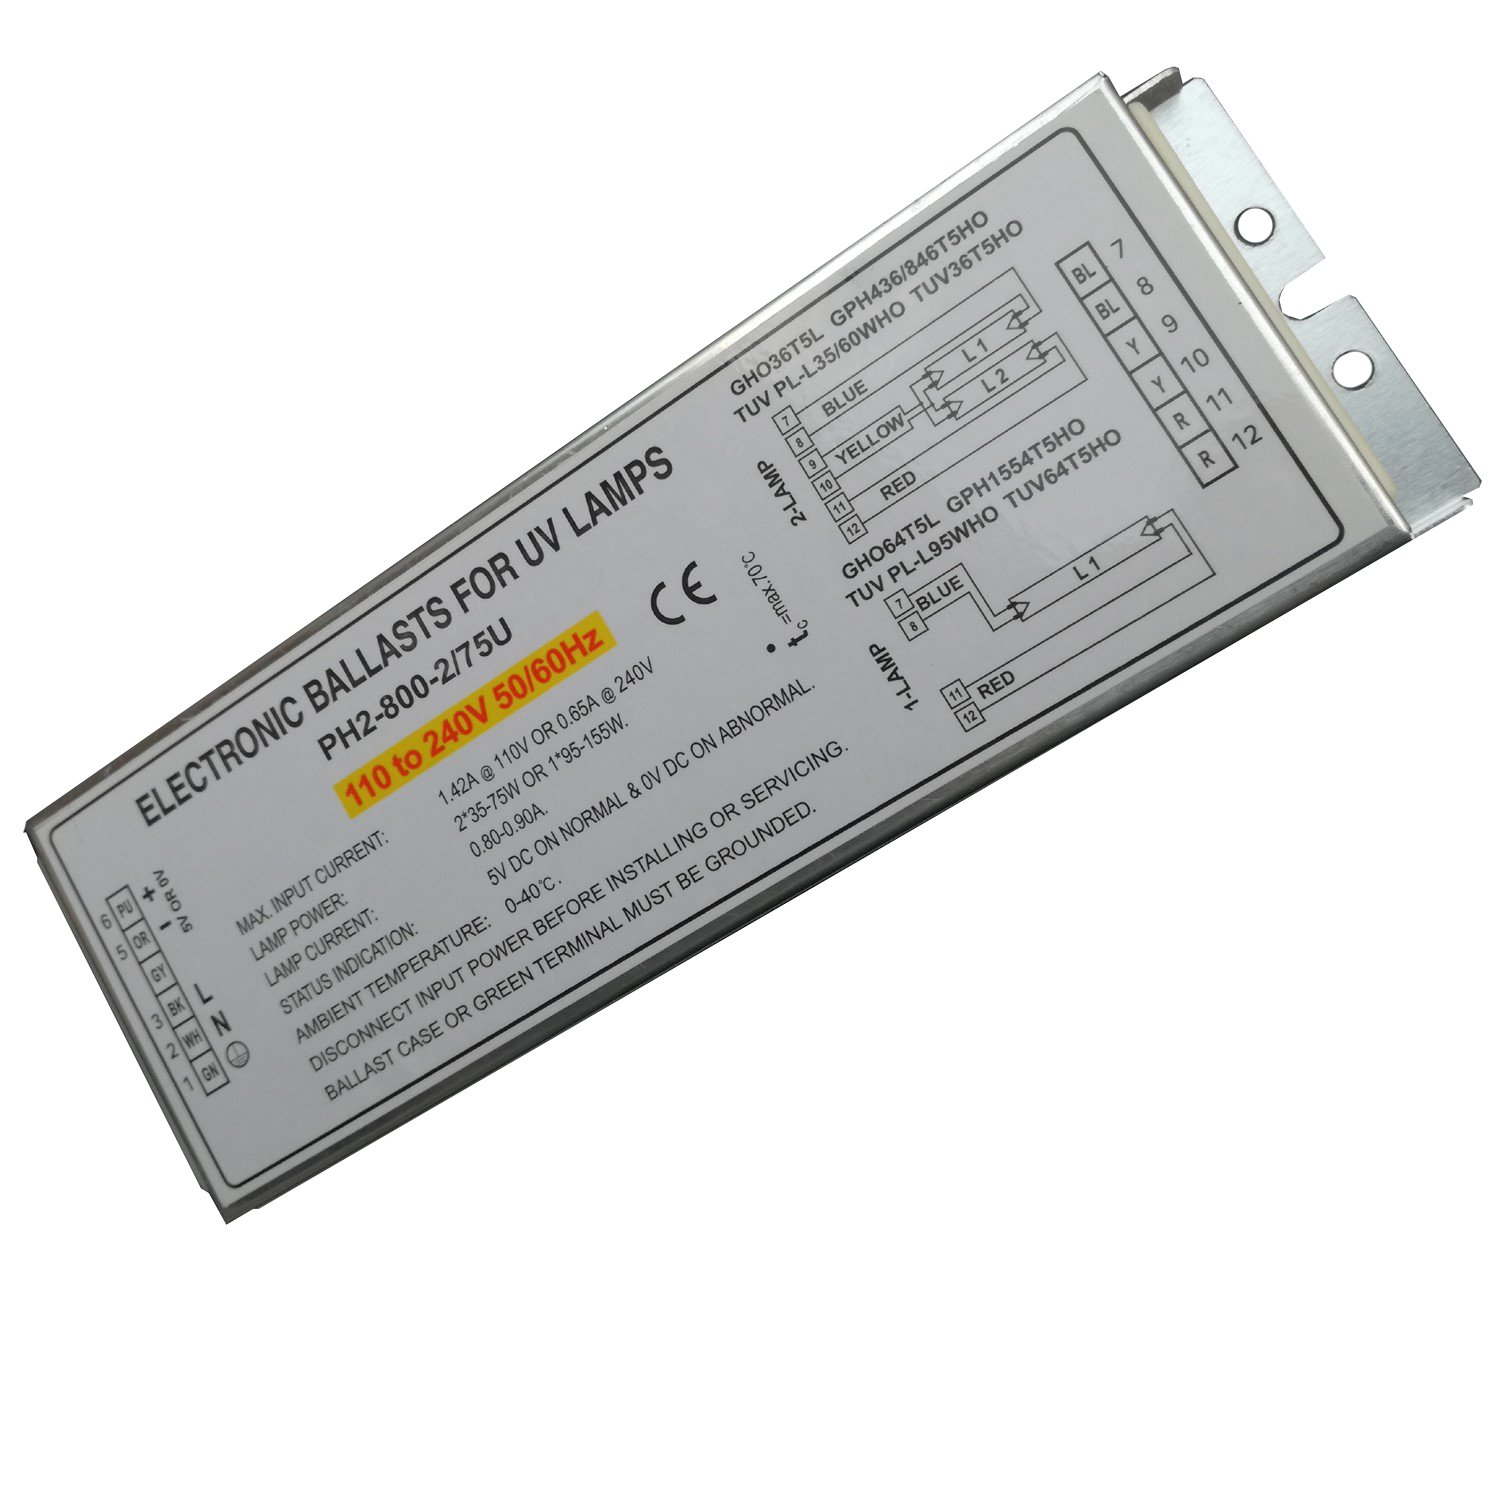 150W Germicidal Lamp Electronic Ballasts for UV Lamp GHO36T5L GPH436/846T5HO TUV PL-L35/60WHO TUV36T5HO,PH2-800-2/75U, Pack of 2pcs SHENZHEN QIJIALE Co. ltd